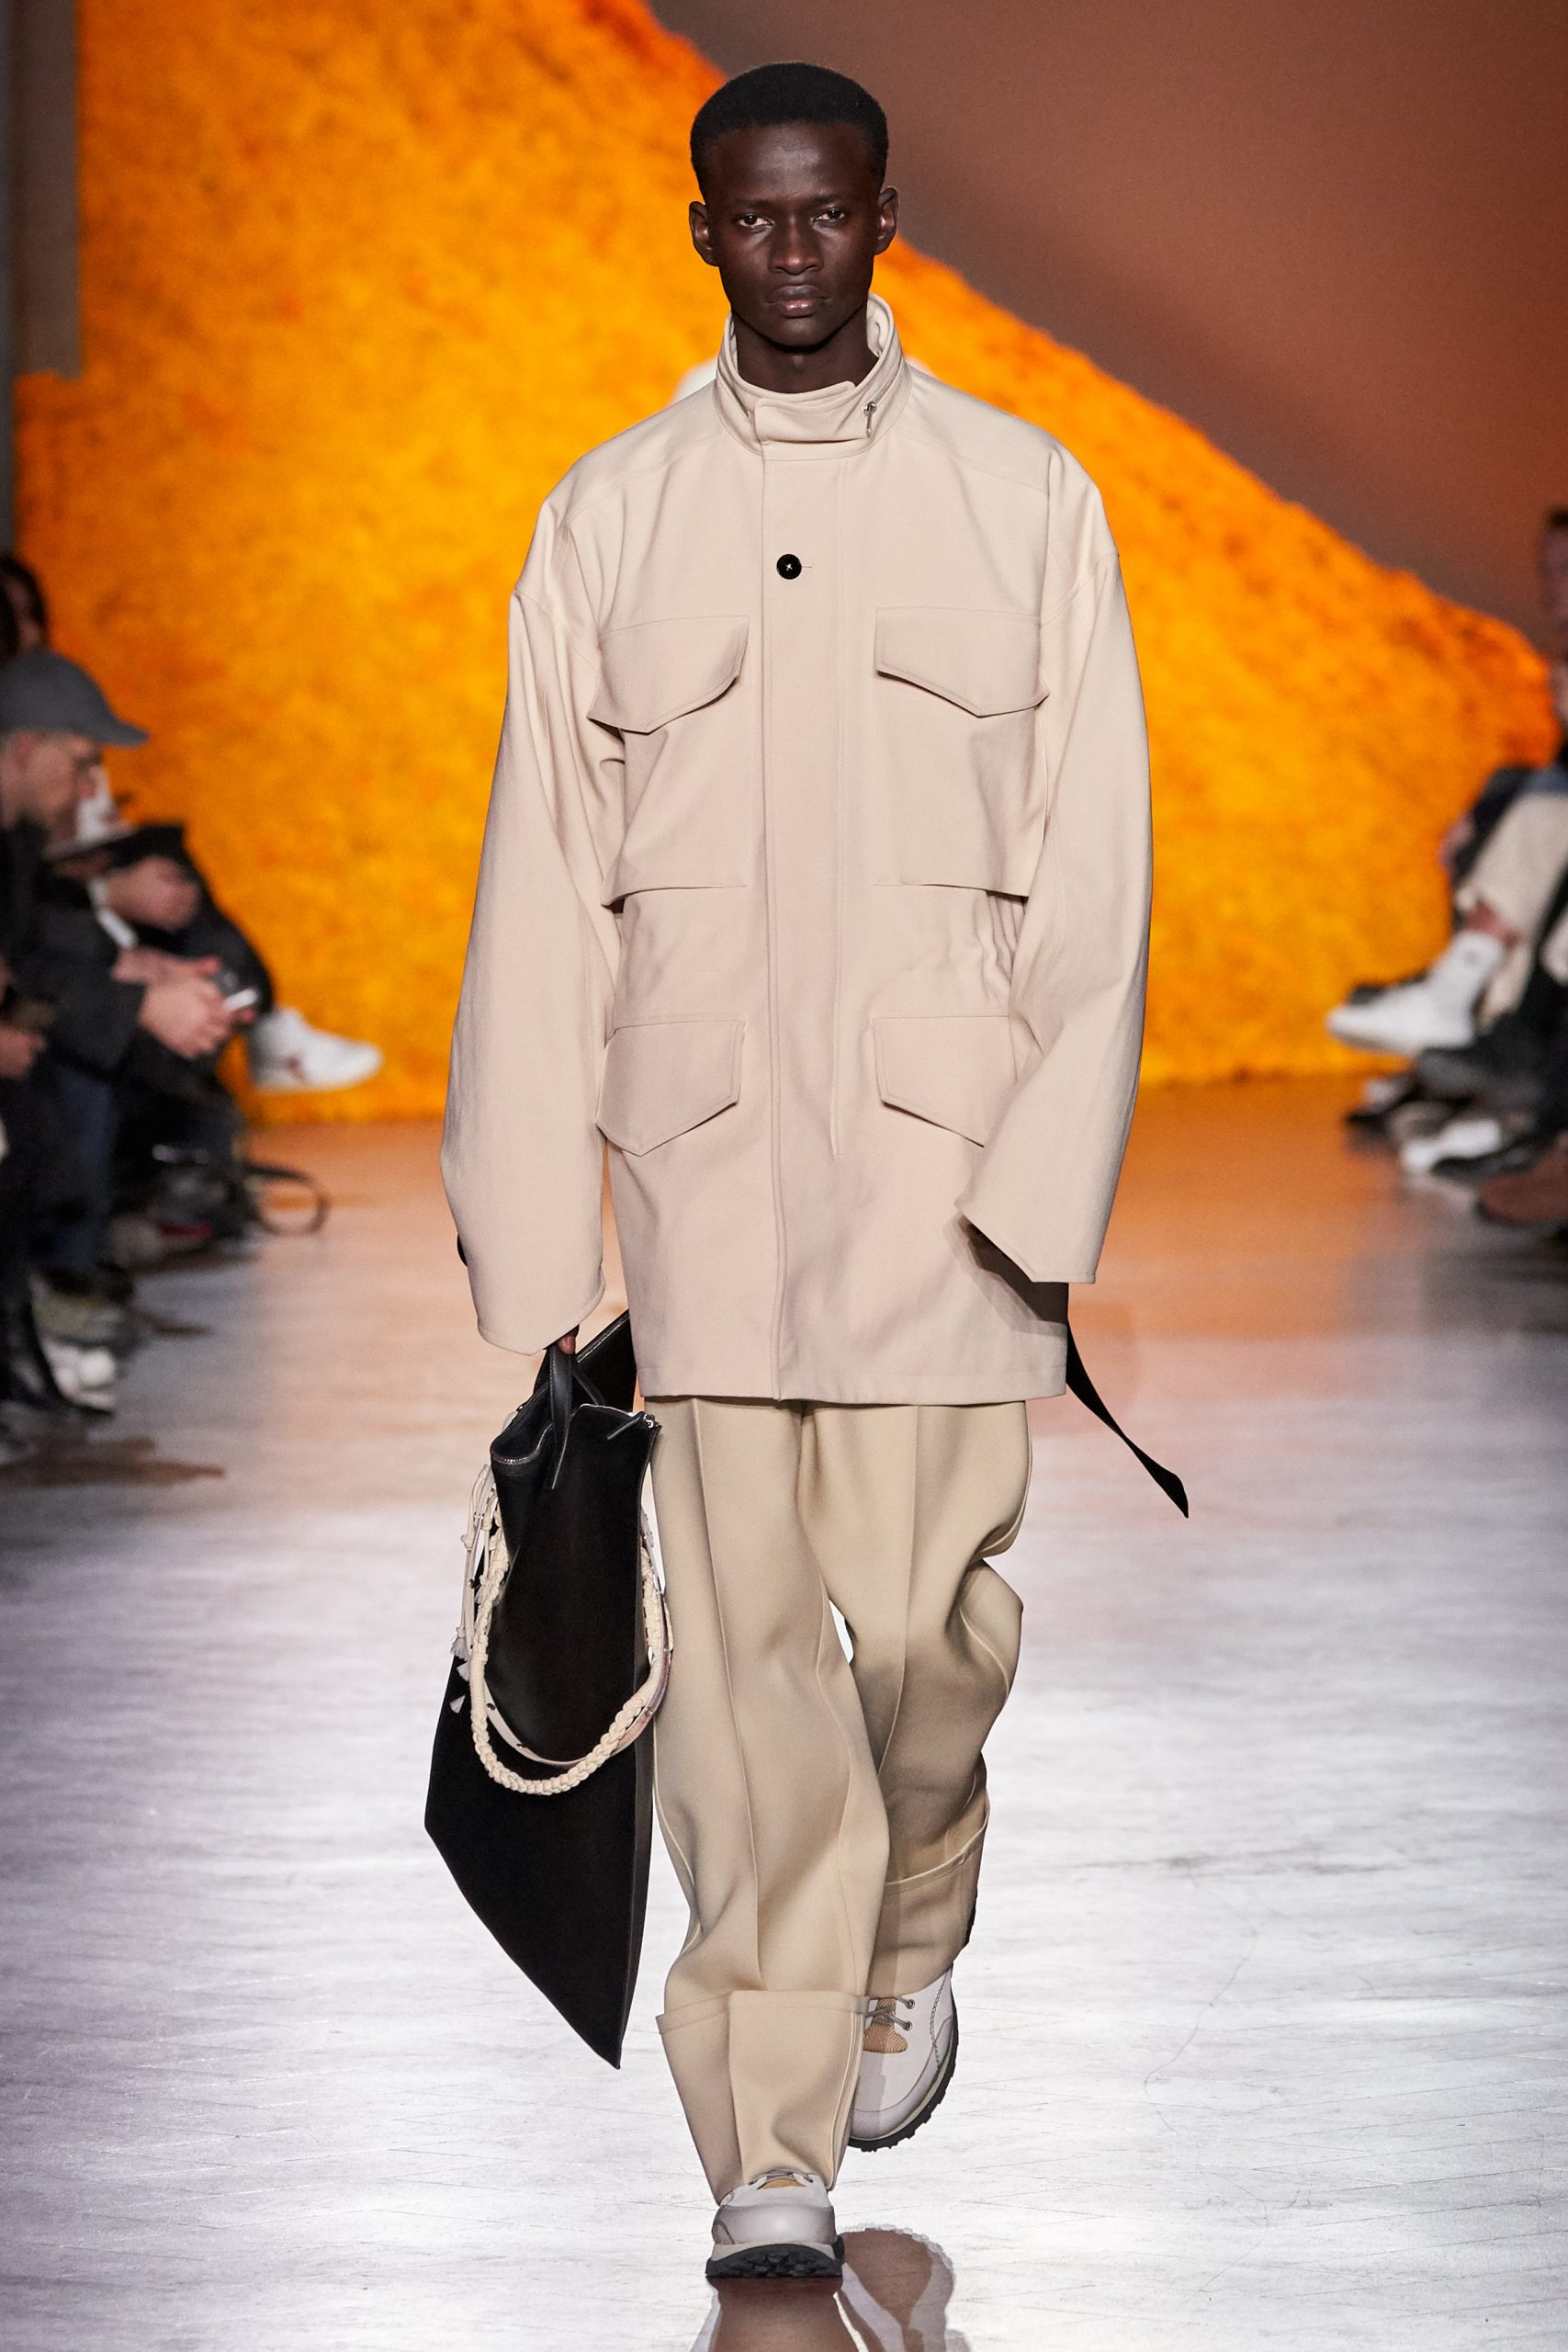 Jil Sander Men's, Telfar, Stefano Pilates for Random Identities Fall 2020 Fashion Show Review